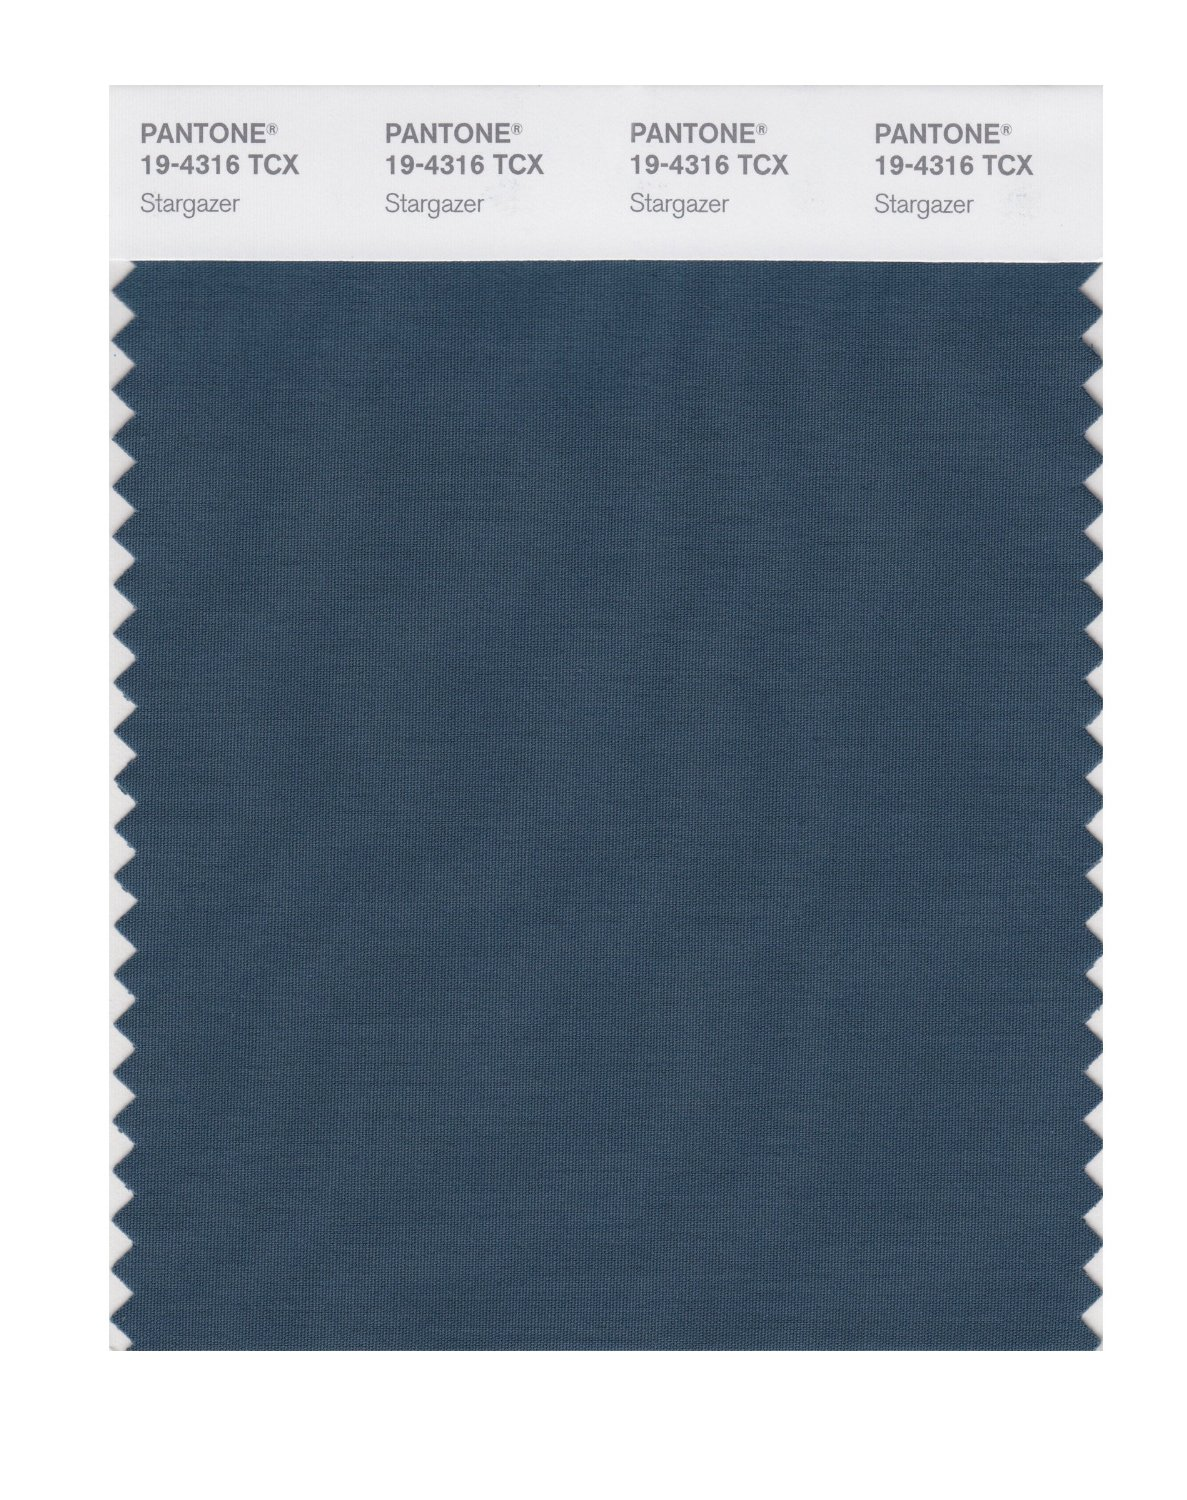 Pantone Smart Swatch 19-4316 Stargazer